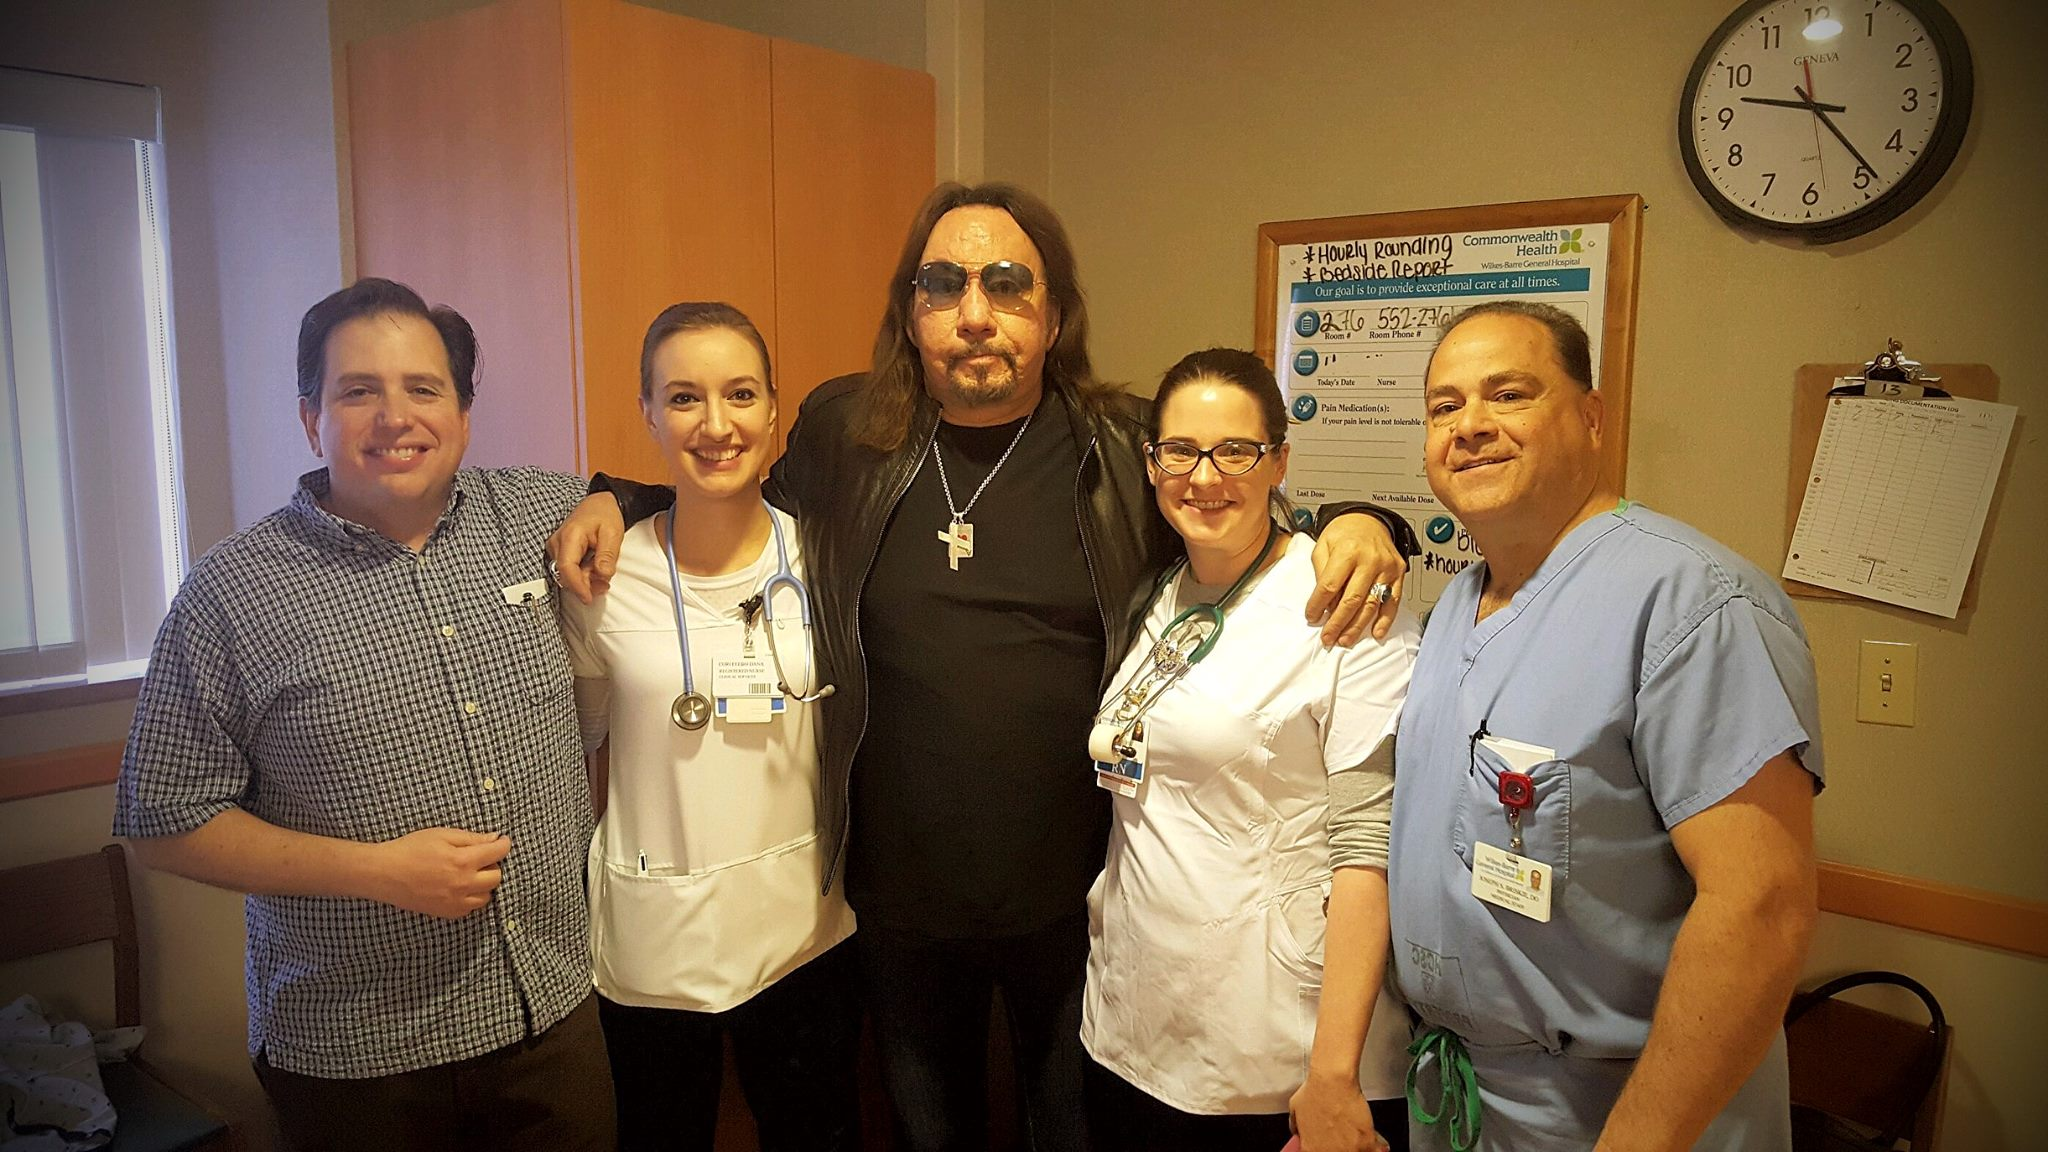 Ace frehley recovers from health scare after wilkes barre show ace frehley recovers from health scare after wilkes barre show michael cavacini kristyandbryce Gallery